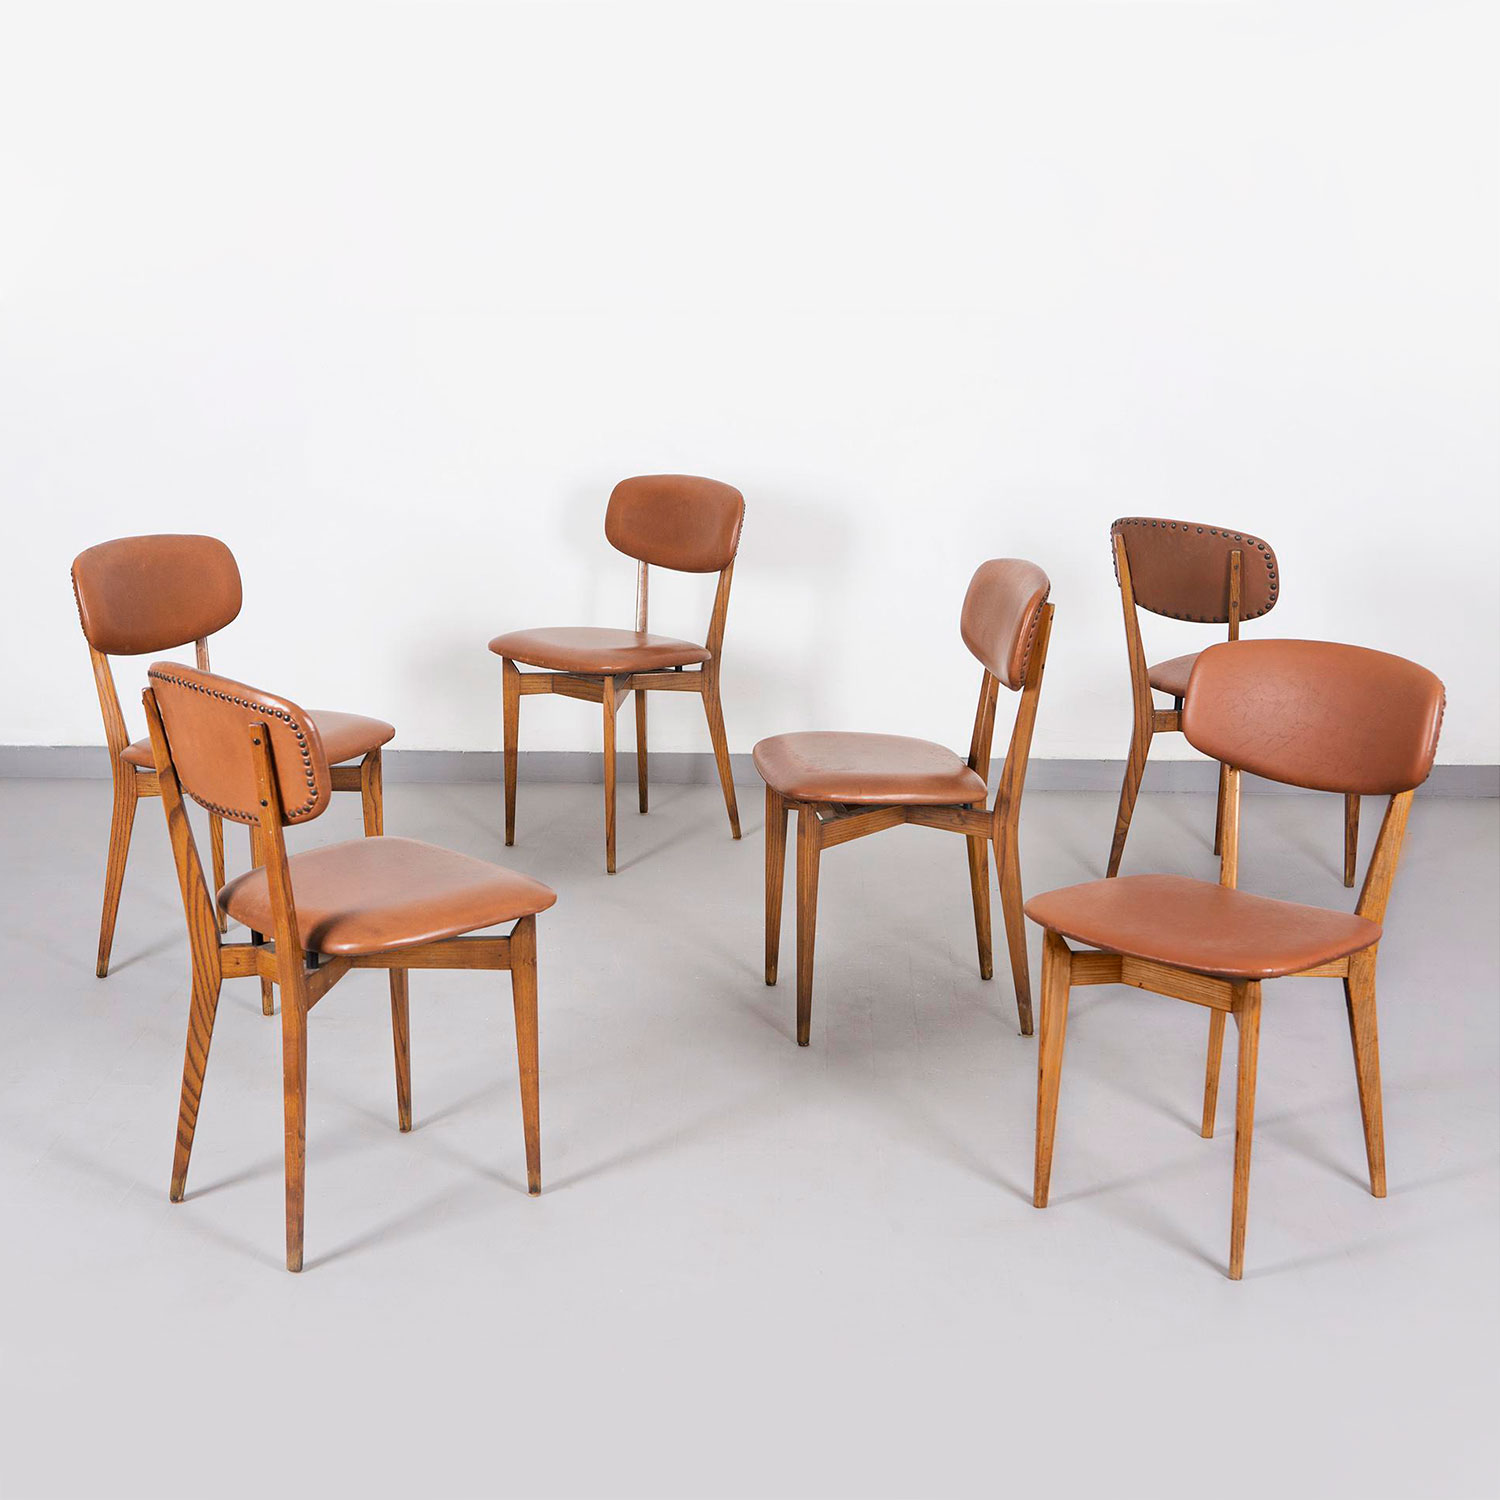 Ico Parisi  |                                  Set of six chairs, model 691